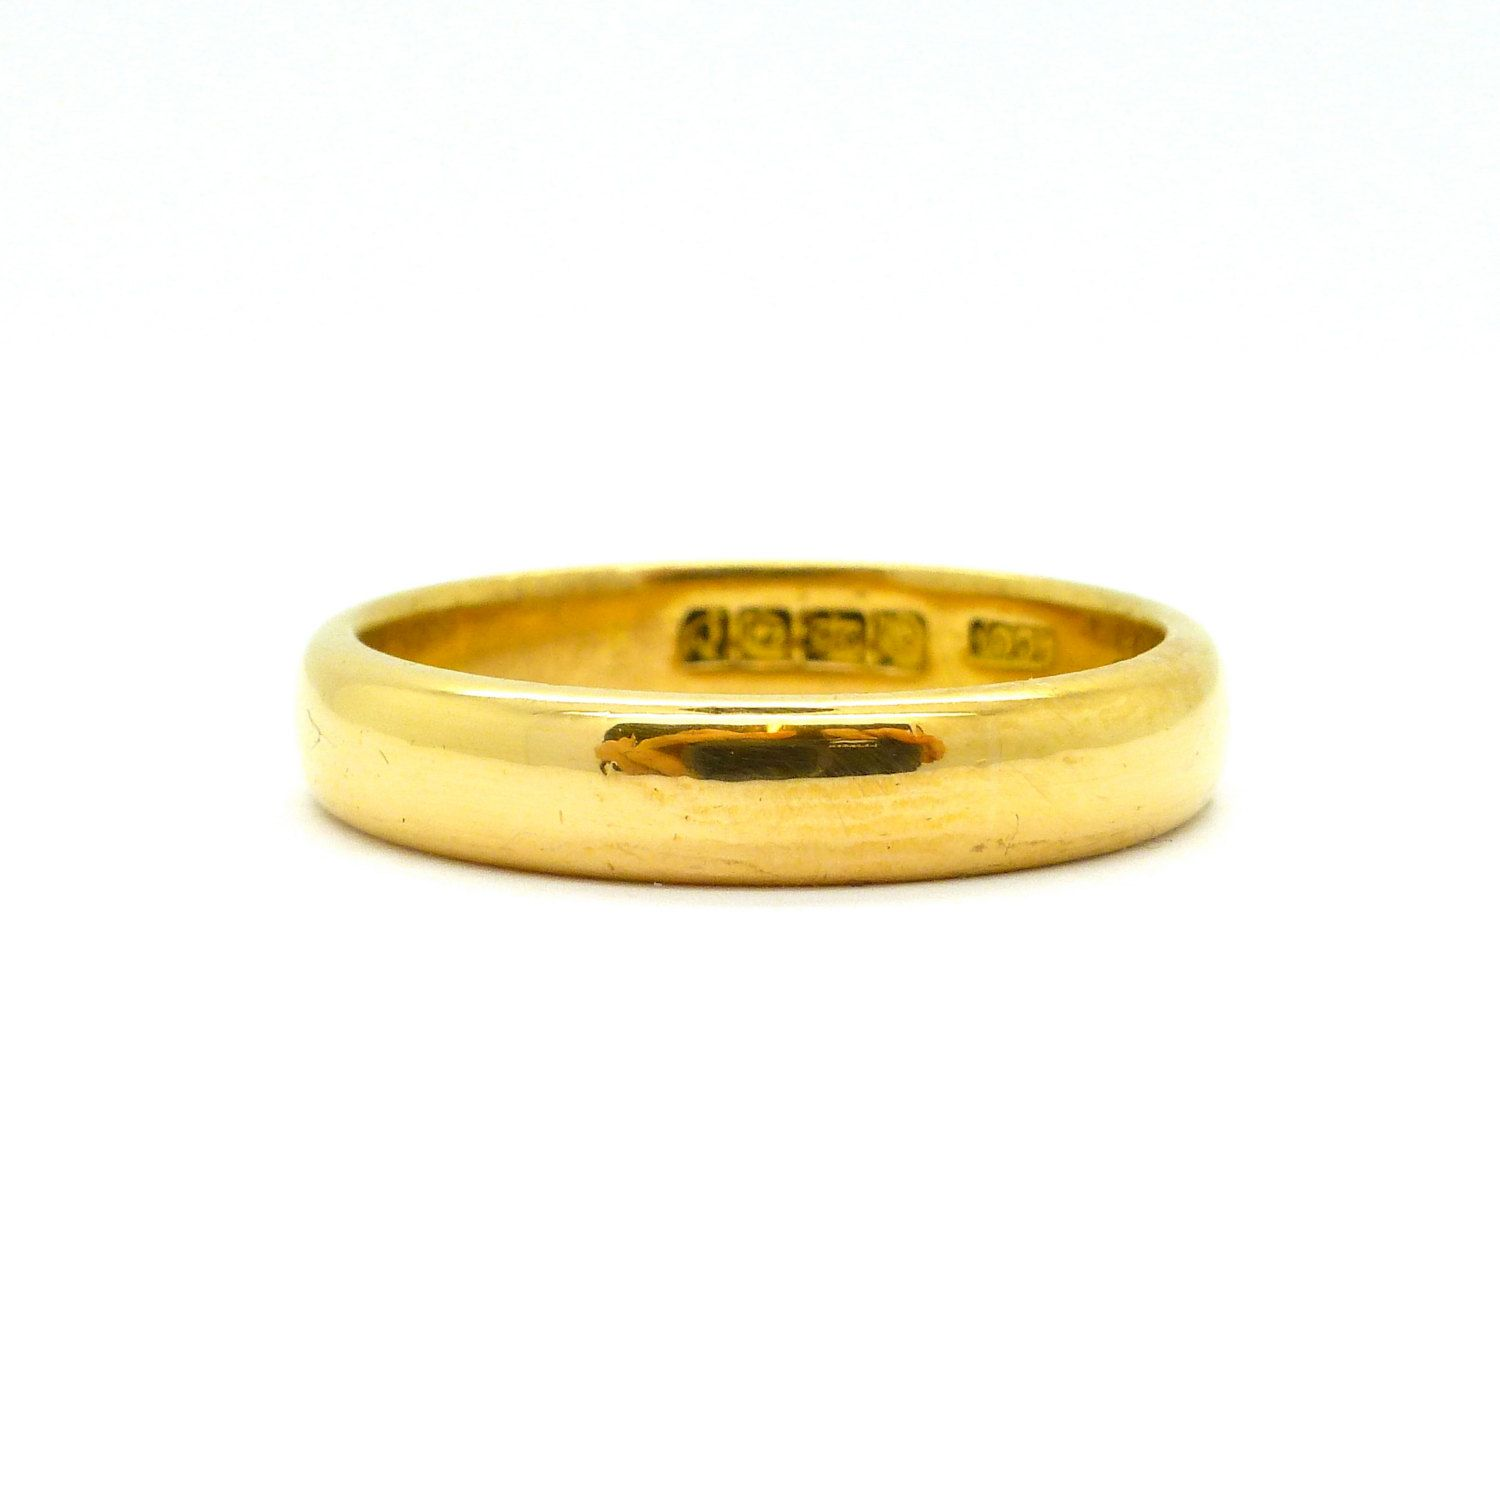 Antique Art Deco wedding band 22ct 22K gold plain bevelled ring